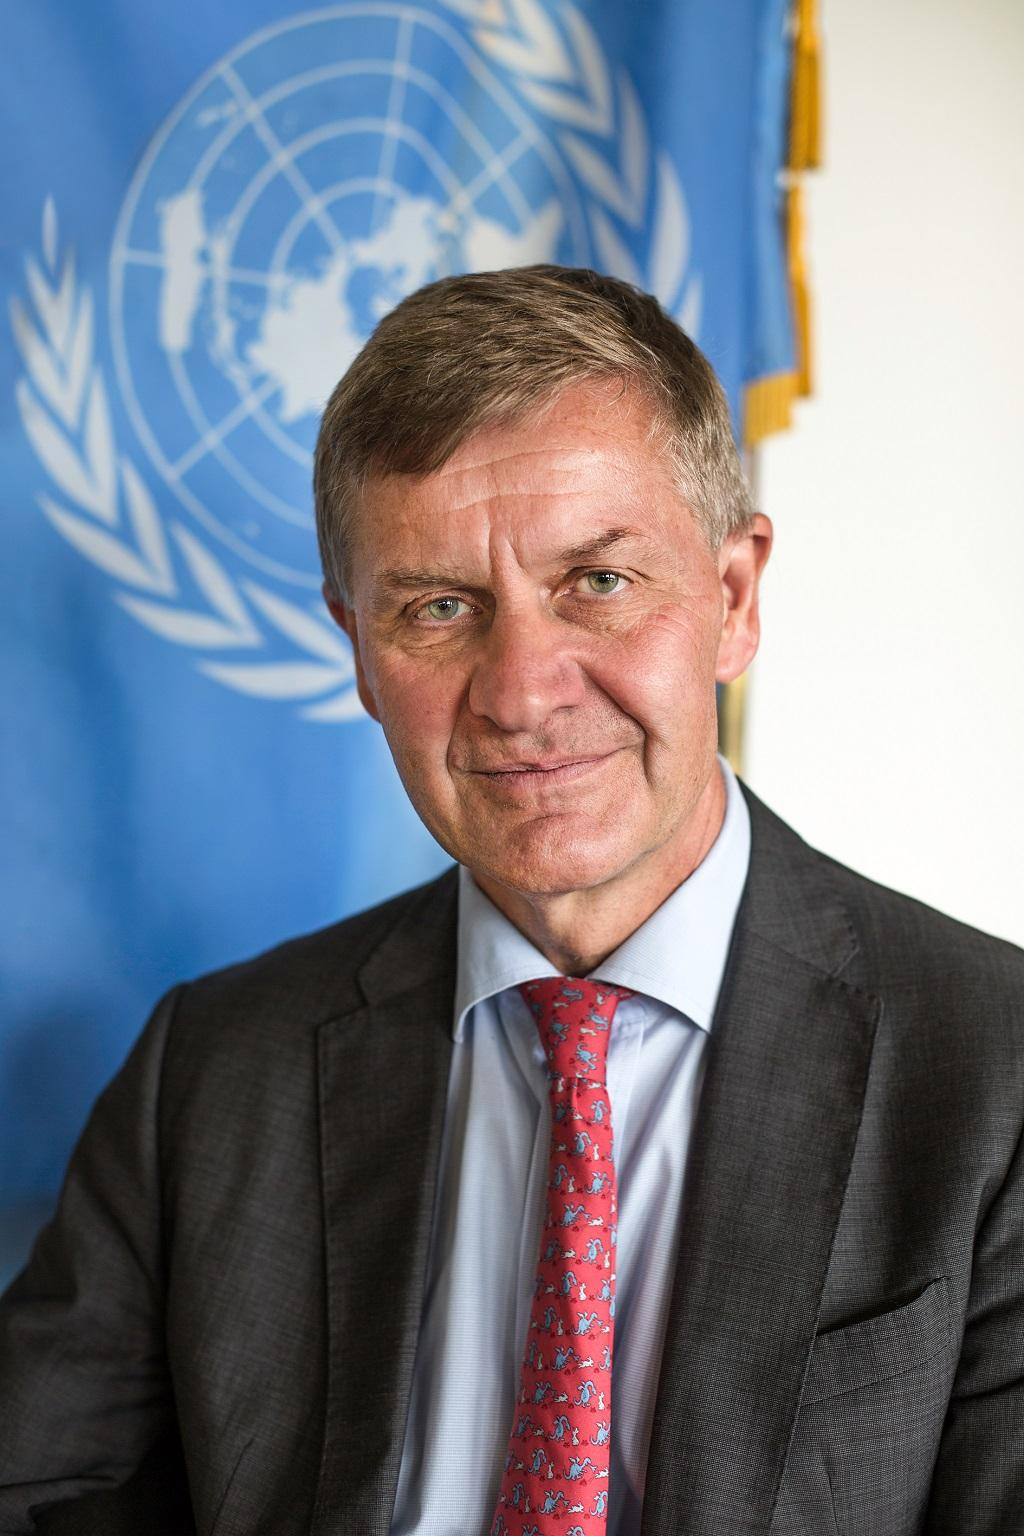 Erik Solheim, UNEP chief, talks to Down To Earth, hours before he was going to attend the main event in New Delhi with Prime Minister Narendra Modi. Credit: United Nations